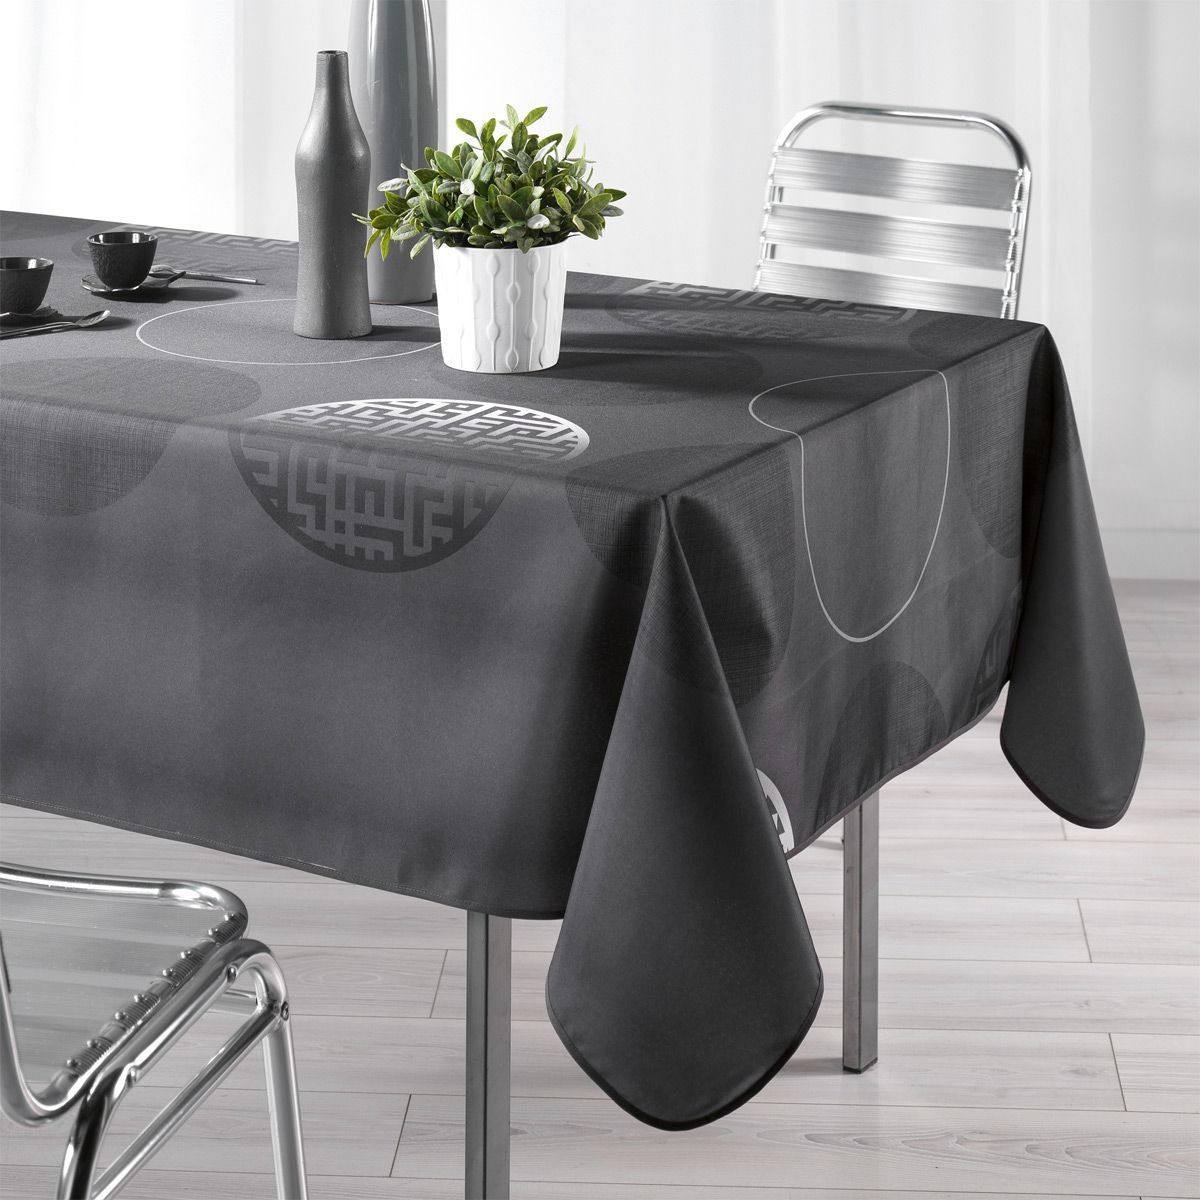 Nappe rectangulaire l240 cm kosmo anthracite nappe de for Nappe et serviettes de table